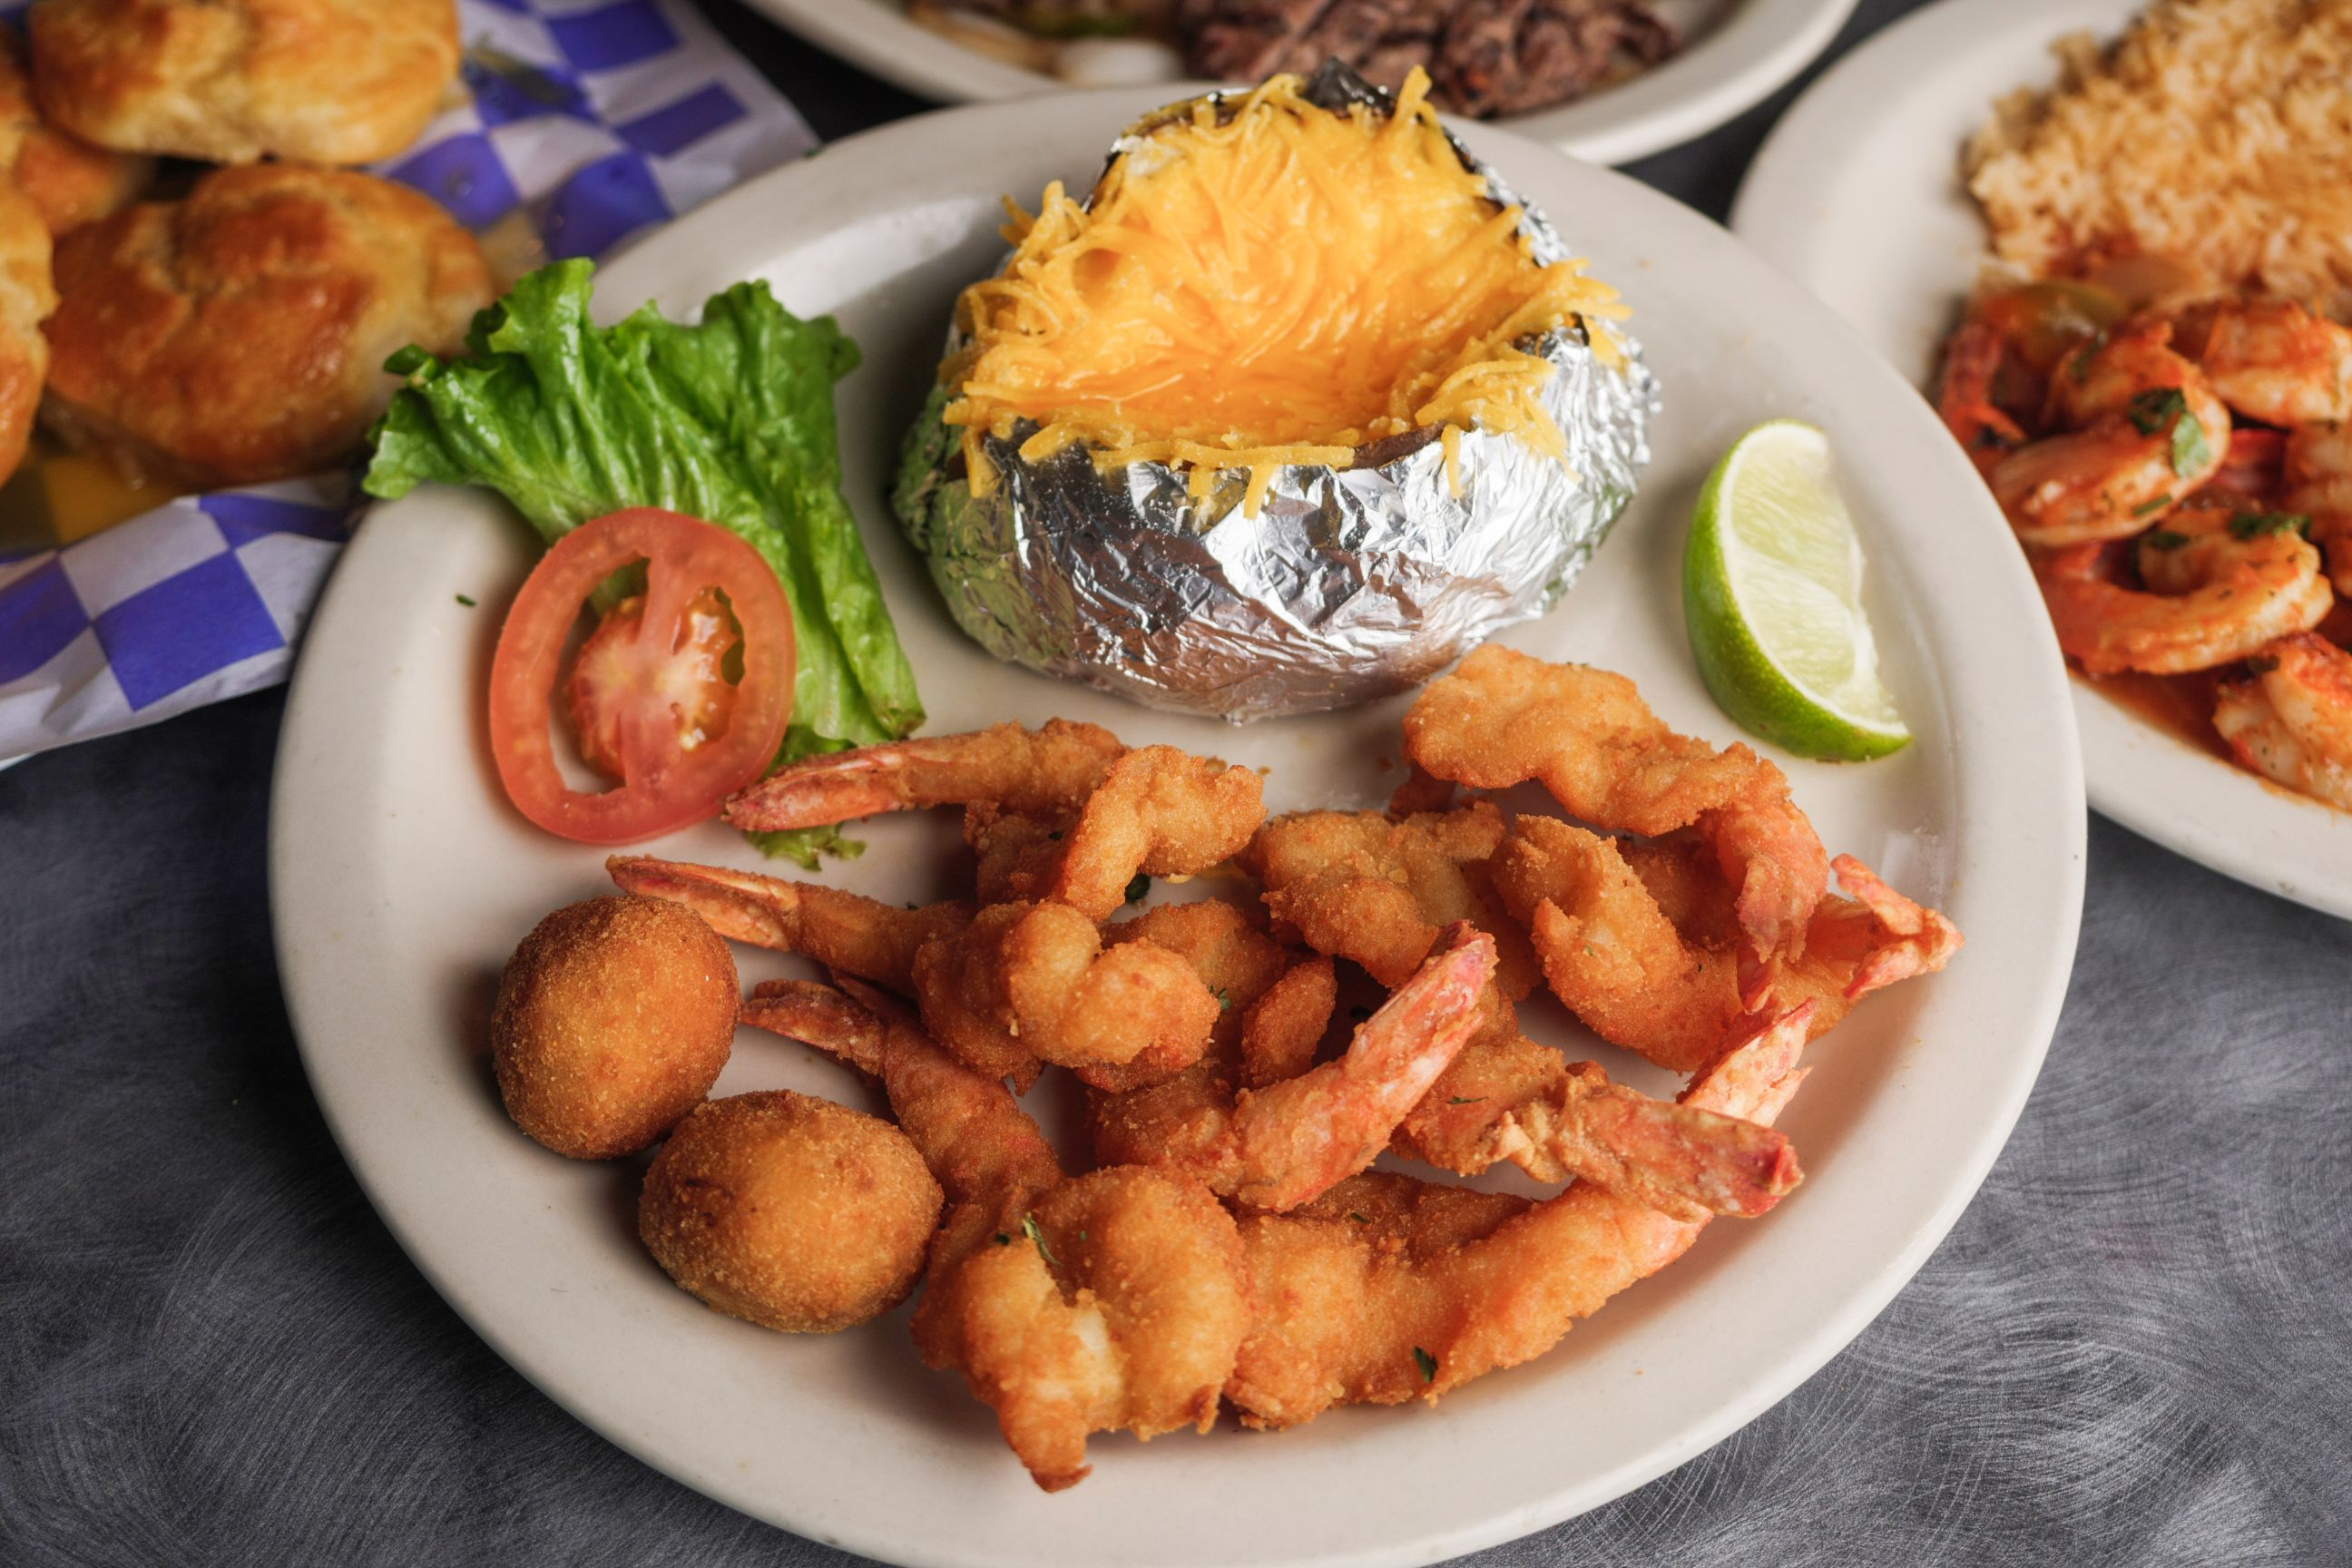 fried shrimp, hush puppies, cheesy baked potato on a plate with lettuce, tomato slice, and lime wedge